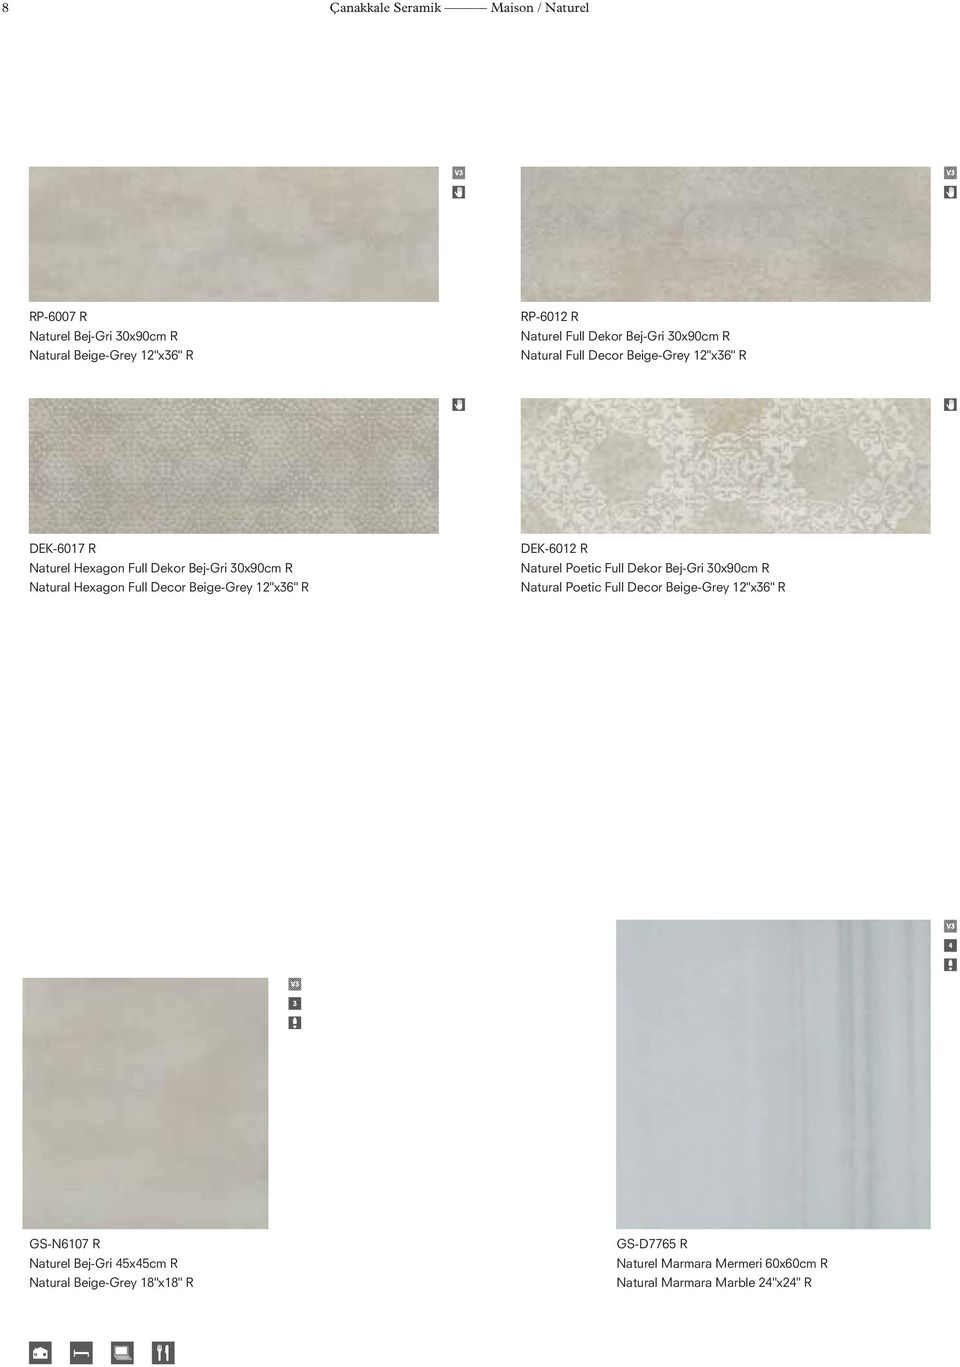 "Decor Beige-Grey 12""x36"" R DEK-6012 R Naturel Poetic Full Dekor Bej-Gri 30x90cm R Natural Poetic Full Decor Beige-Grey 12""x36"" R"